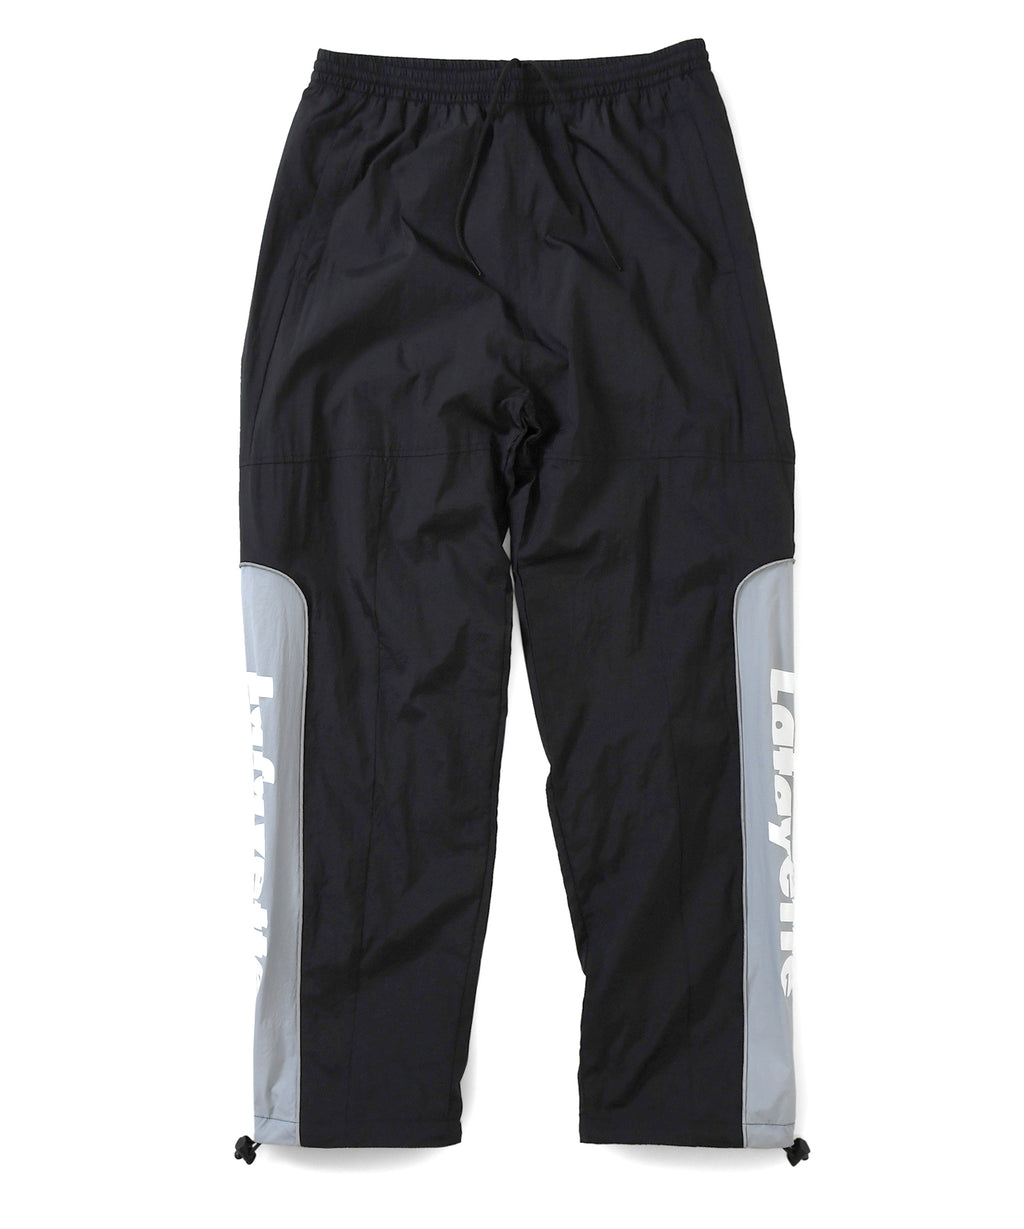 Lafayette COLORBLOCK NYLON TRACK PANTS LS201202 BLACK